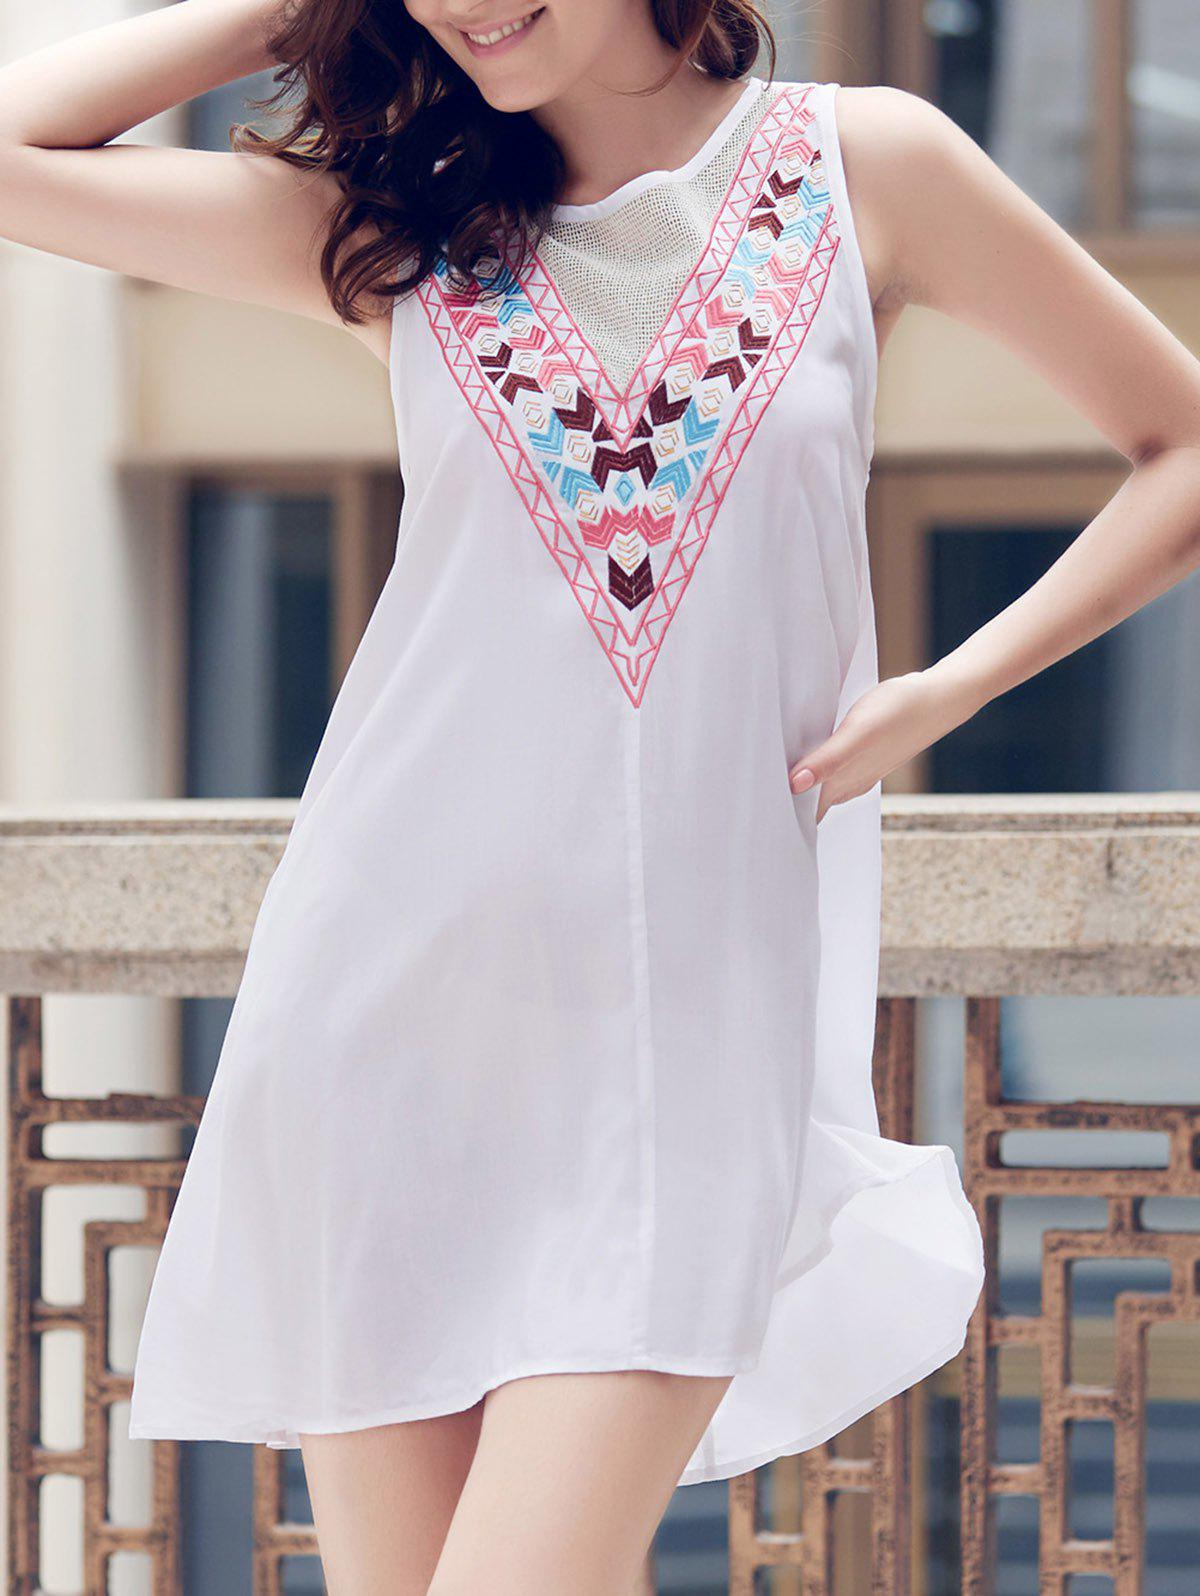 Fashionable Women's Jewel Neck Sleeveless Embroidered A-Line Dress - S WHITE